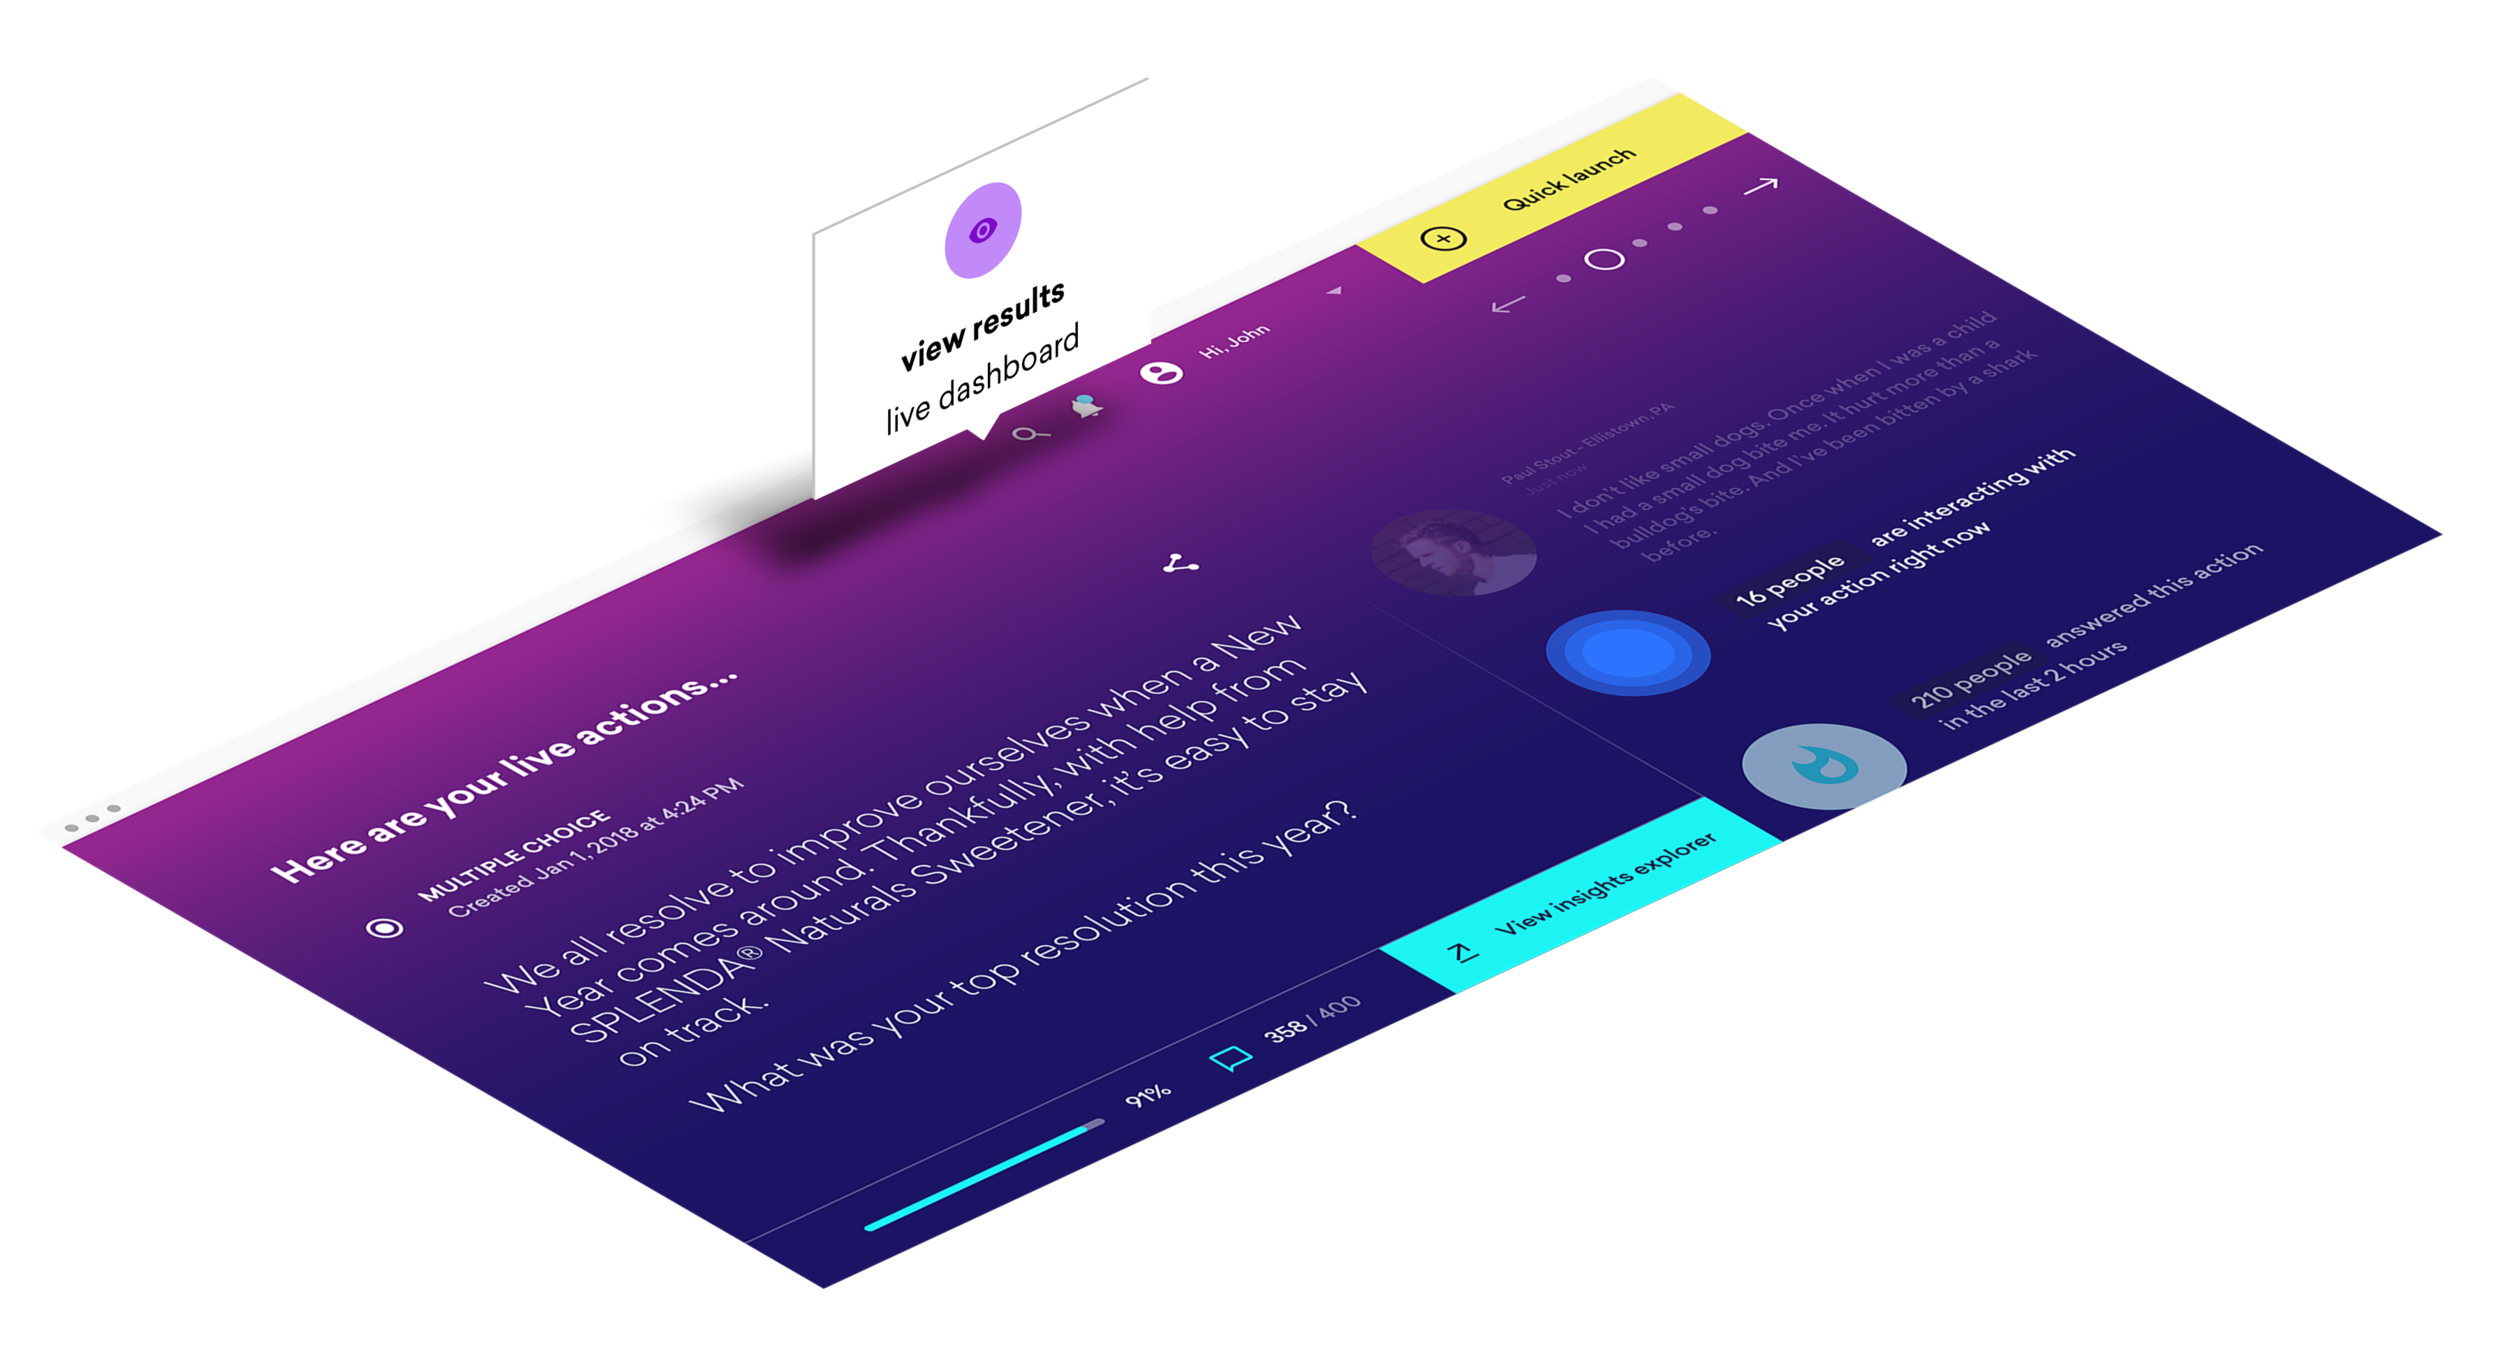 Tablet-Screens-presentation-Mock-up-dash2.png